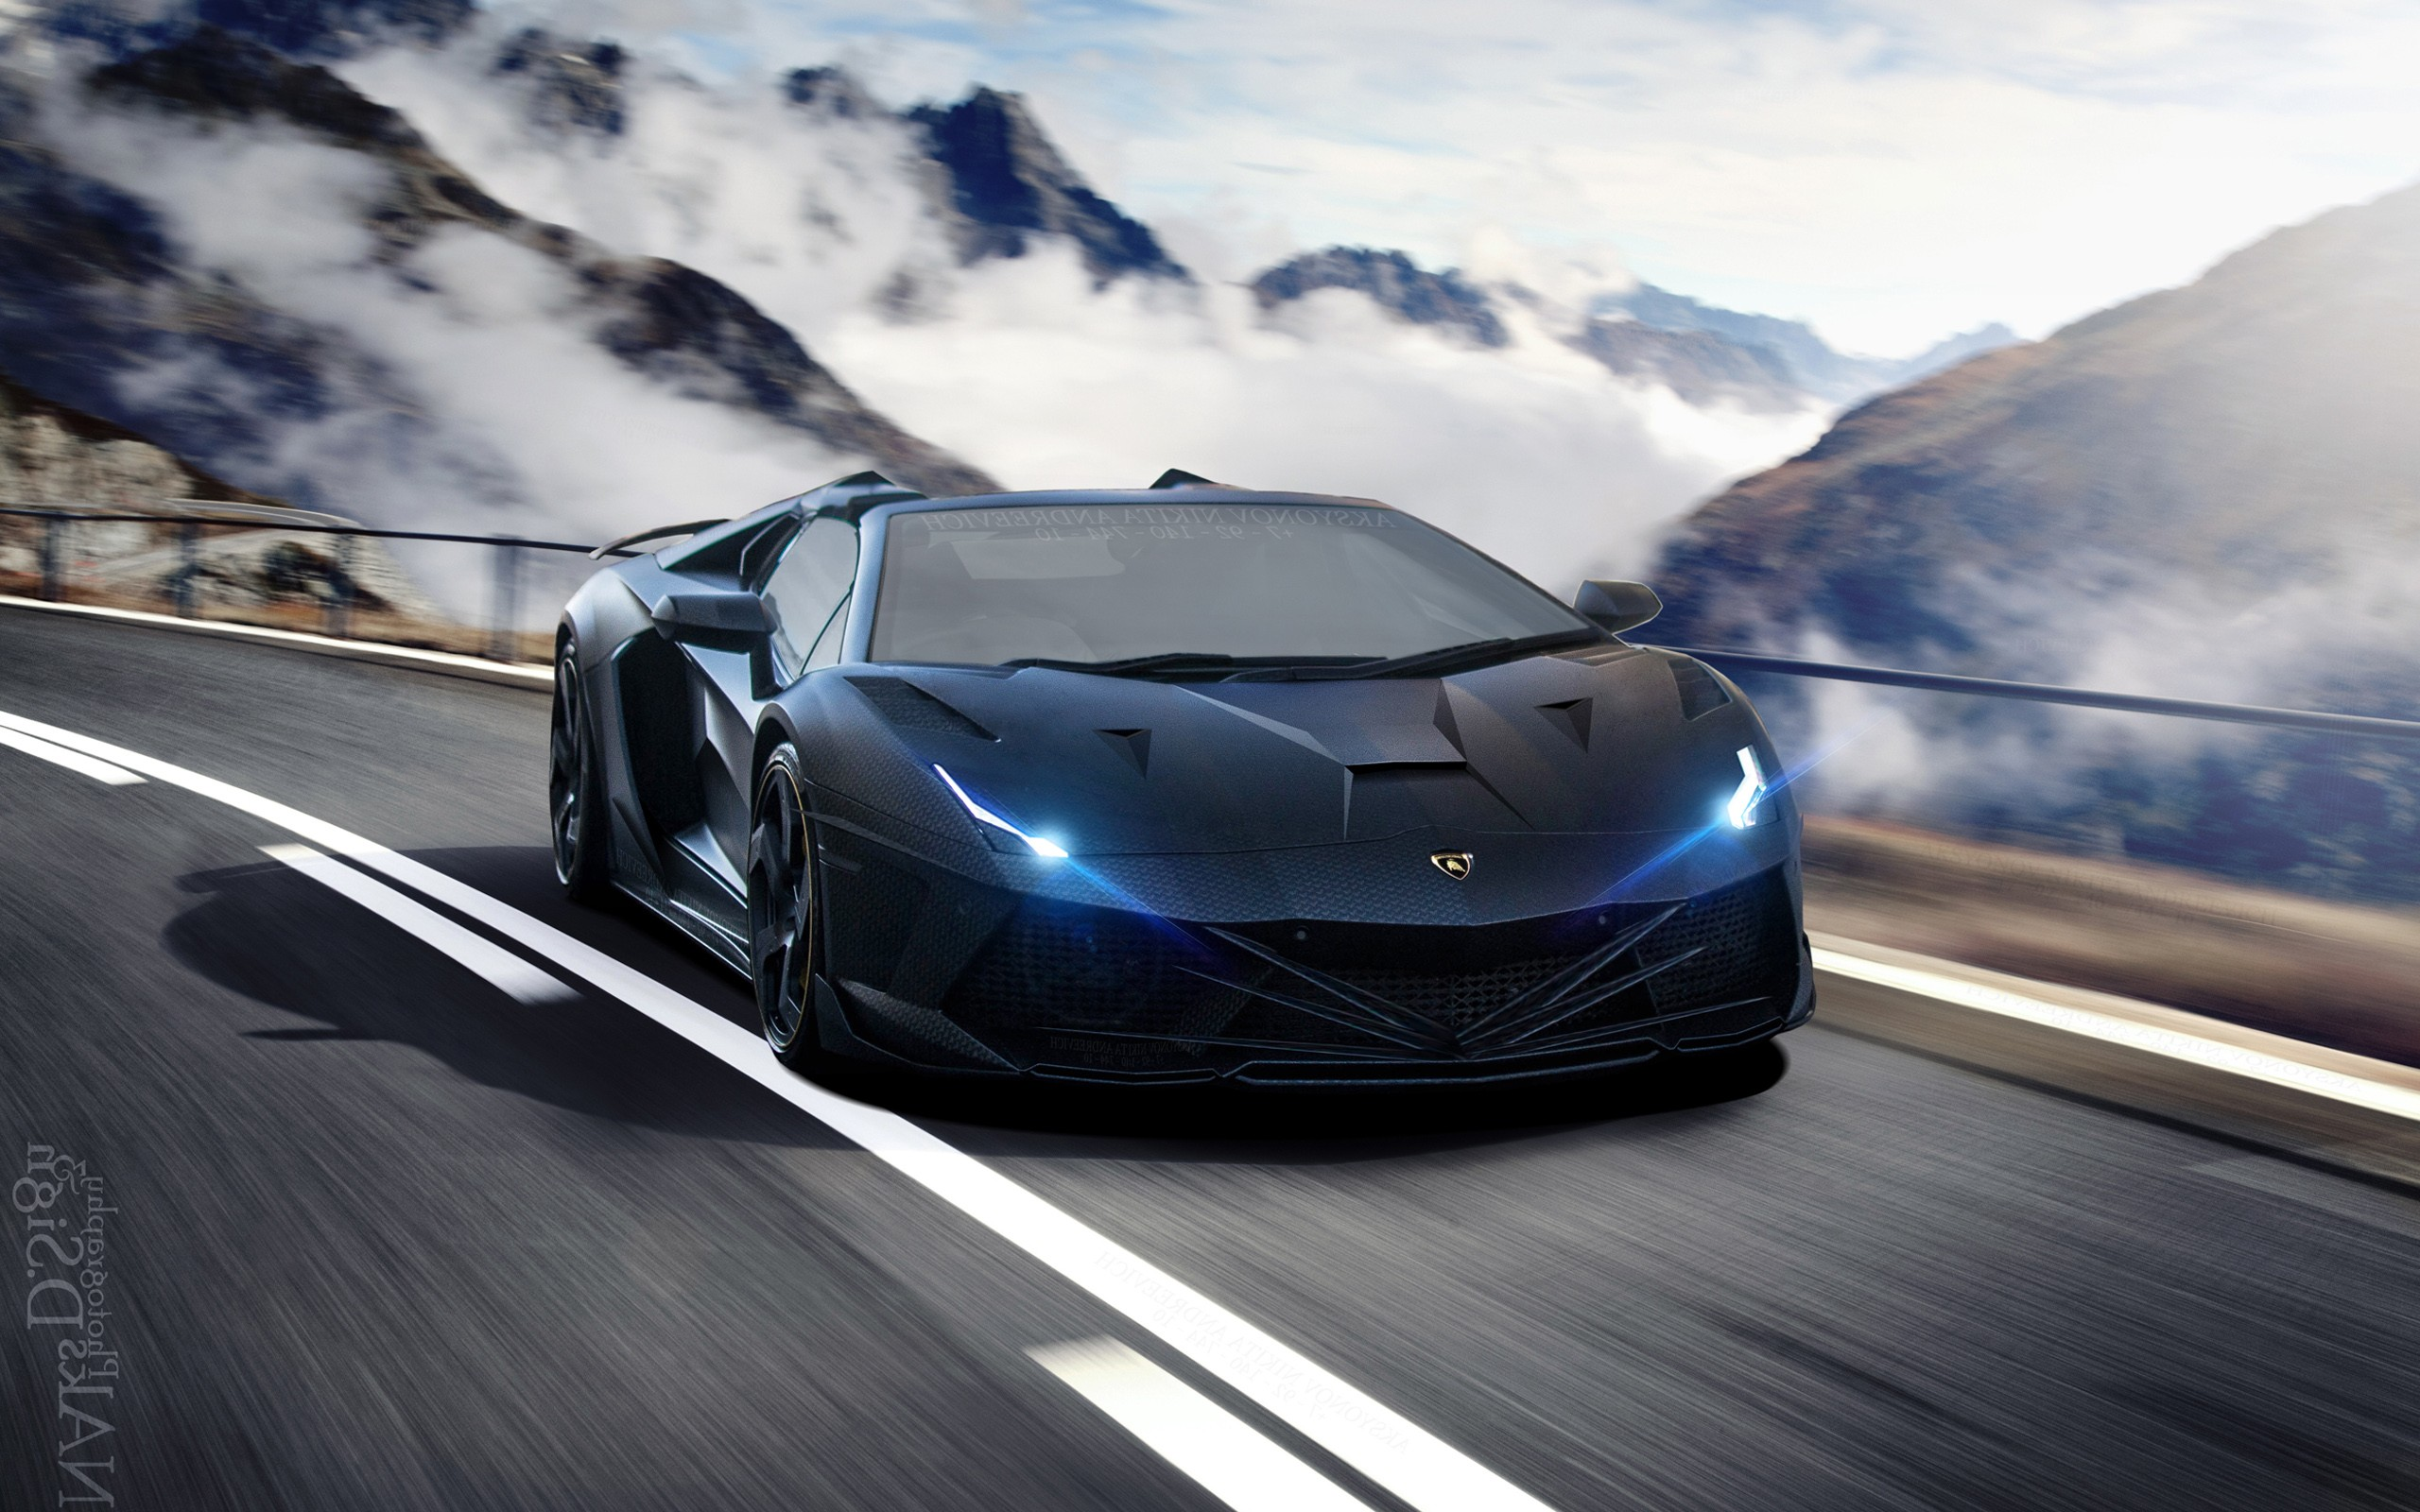 1152x864 Lamborghini Aventador 2 1152x864 Resolution HD 4k